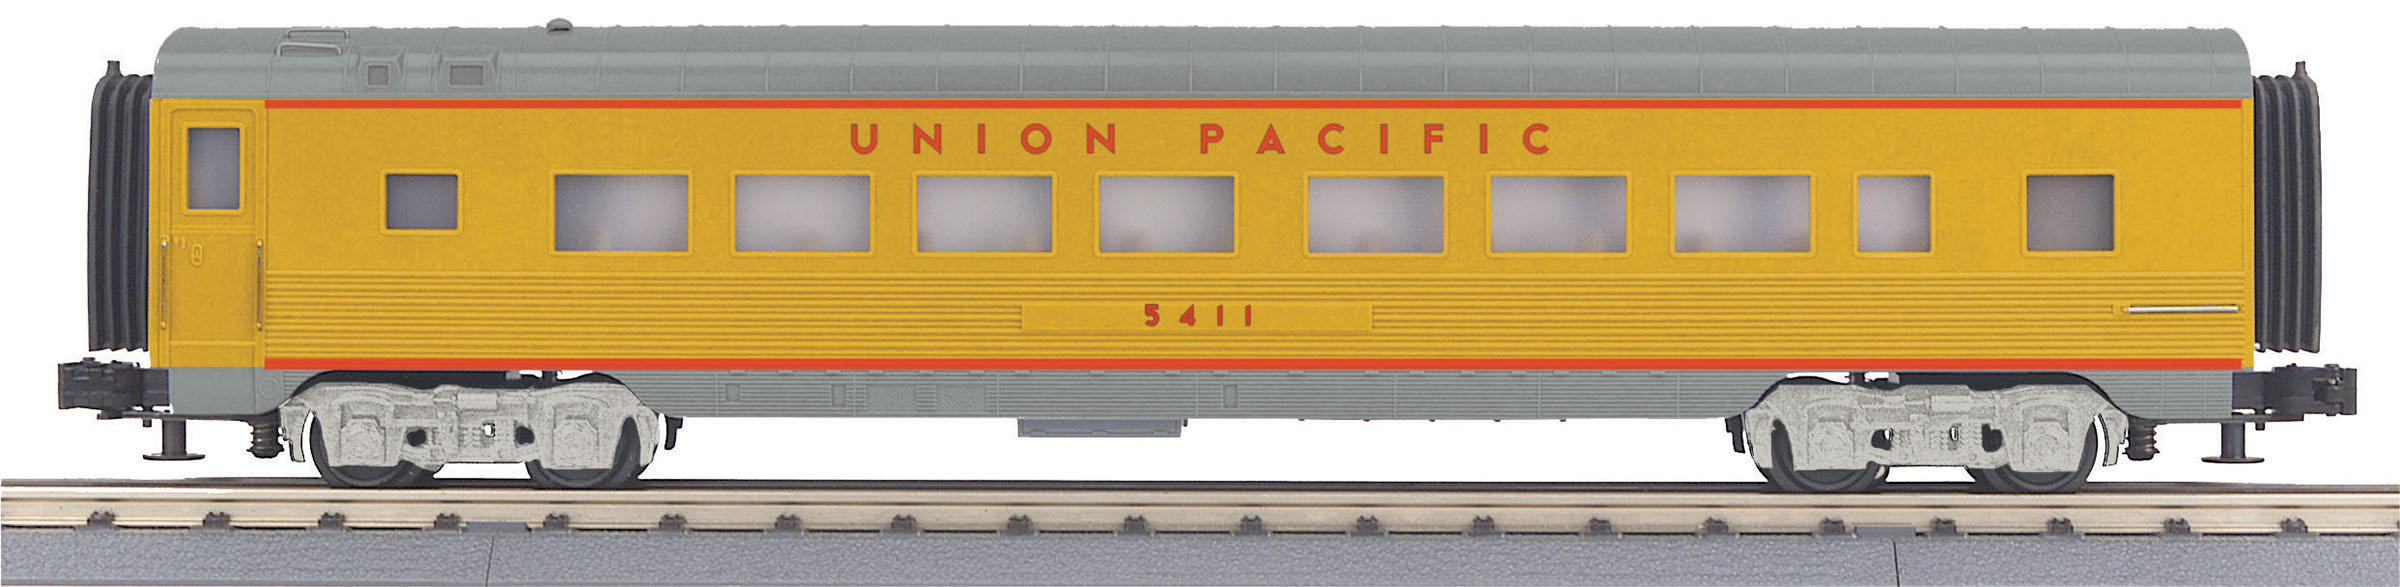 MTH 30-68142 60' Streamlined Coach 3 Rail RailKing Union Pacific